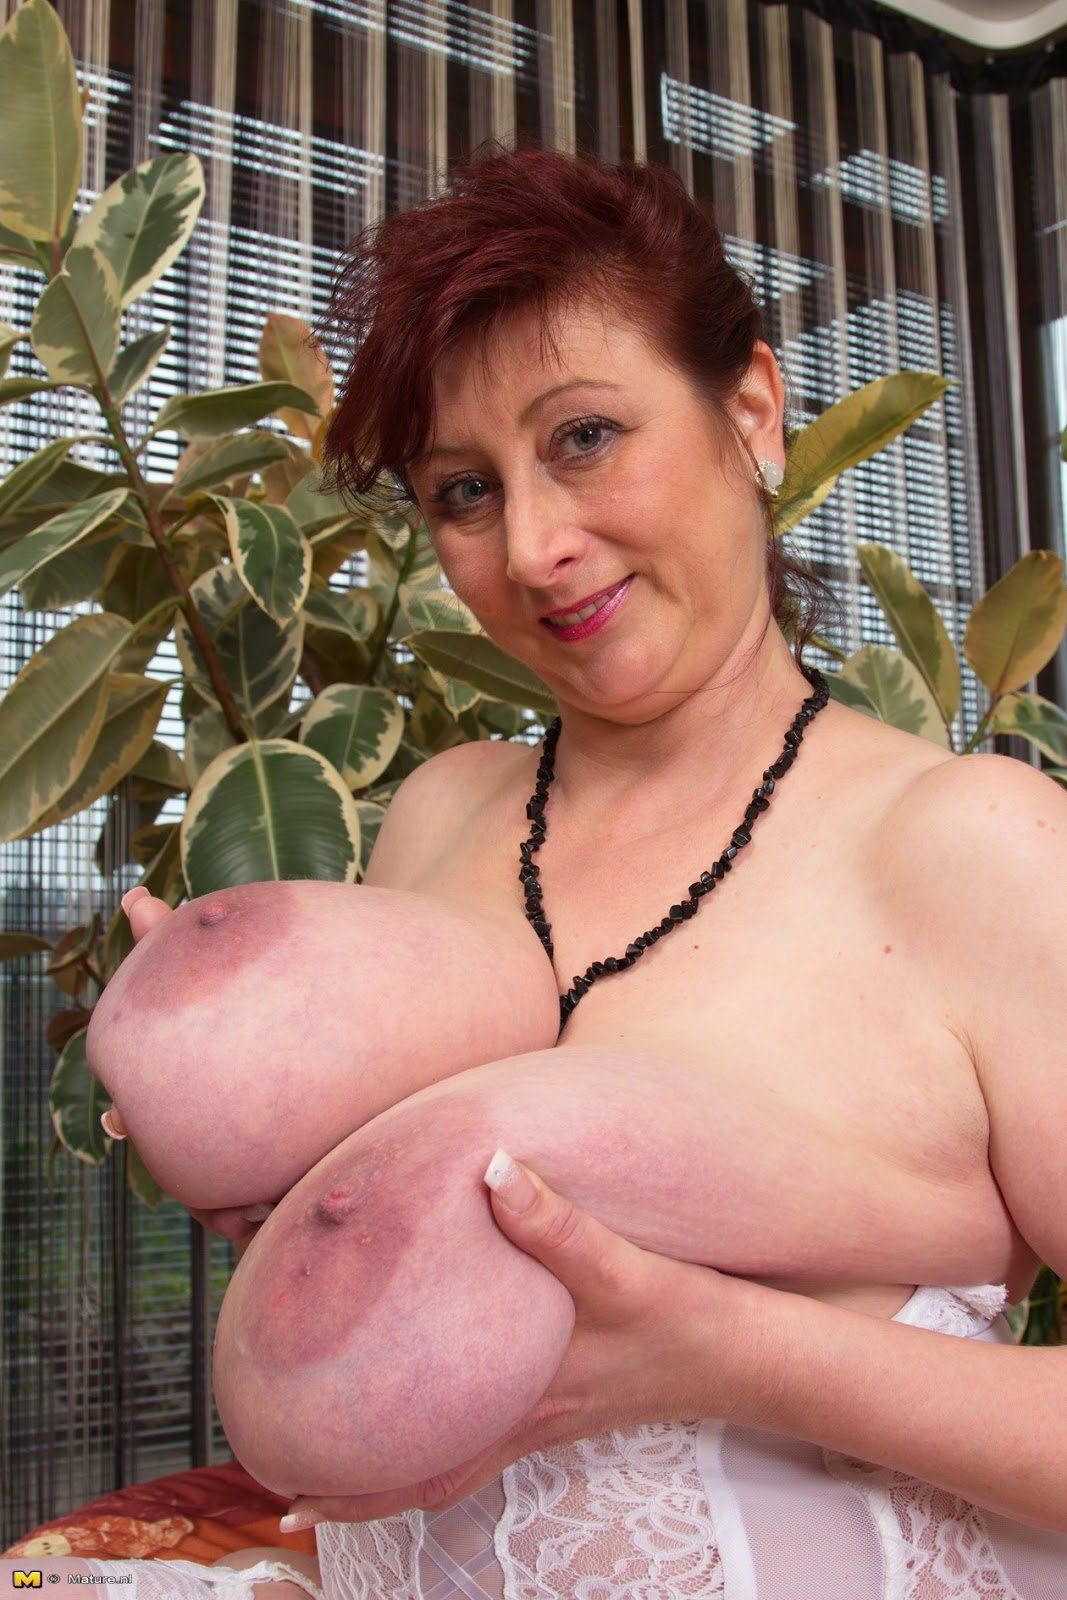 Huge breasted nude women